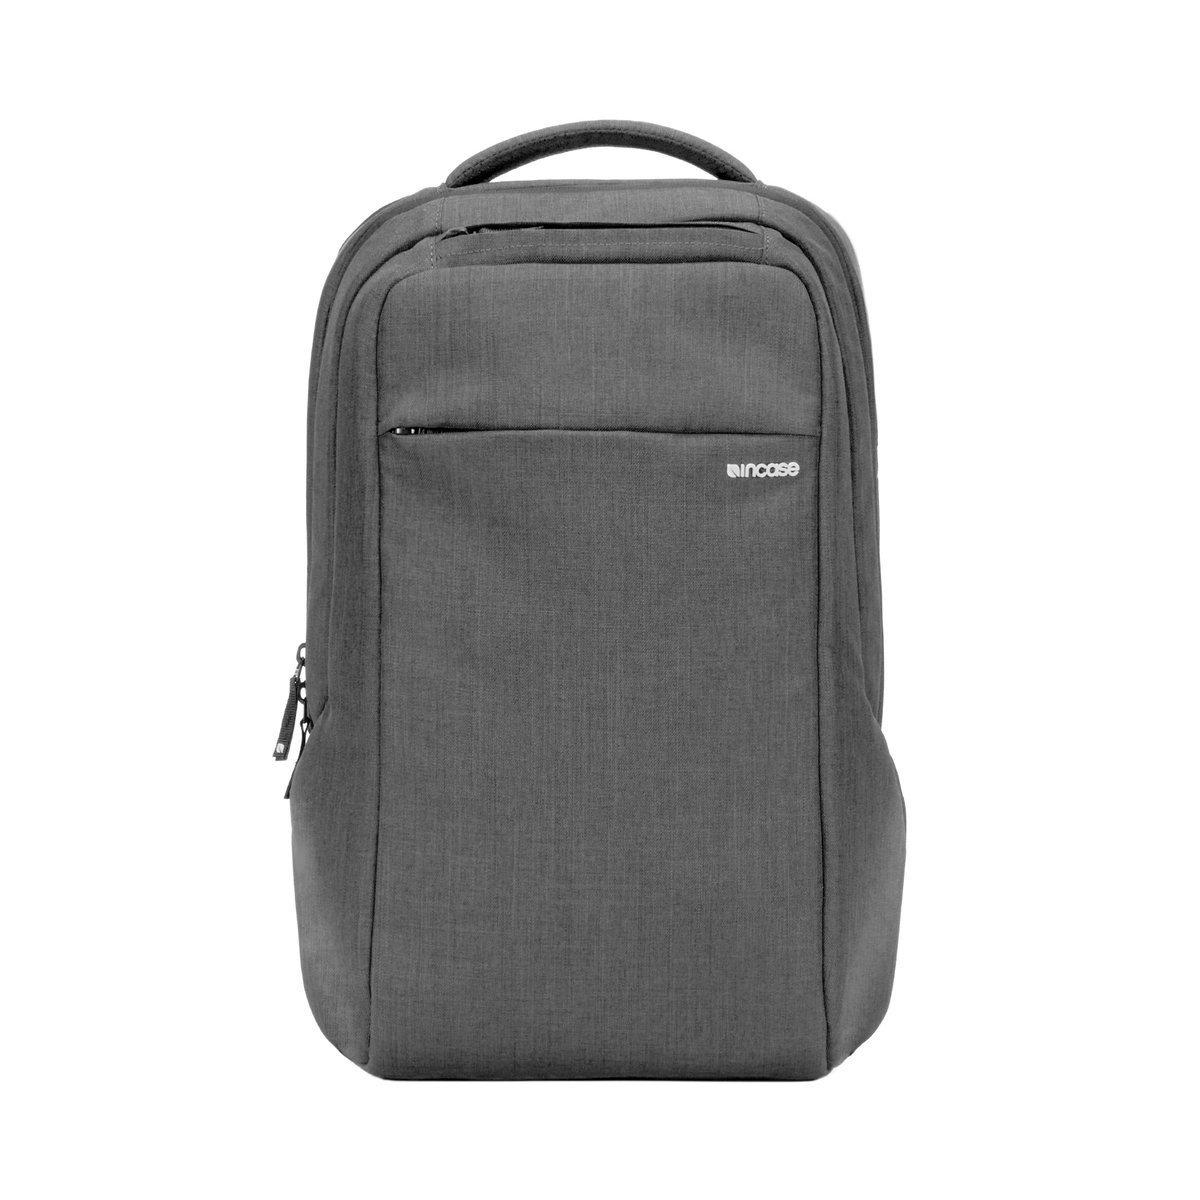 ICON Slim Backpack s/Woolenex - Asphalt